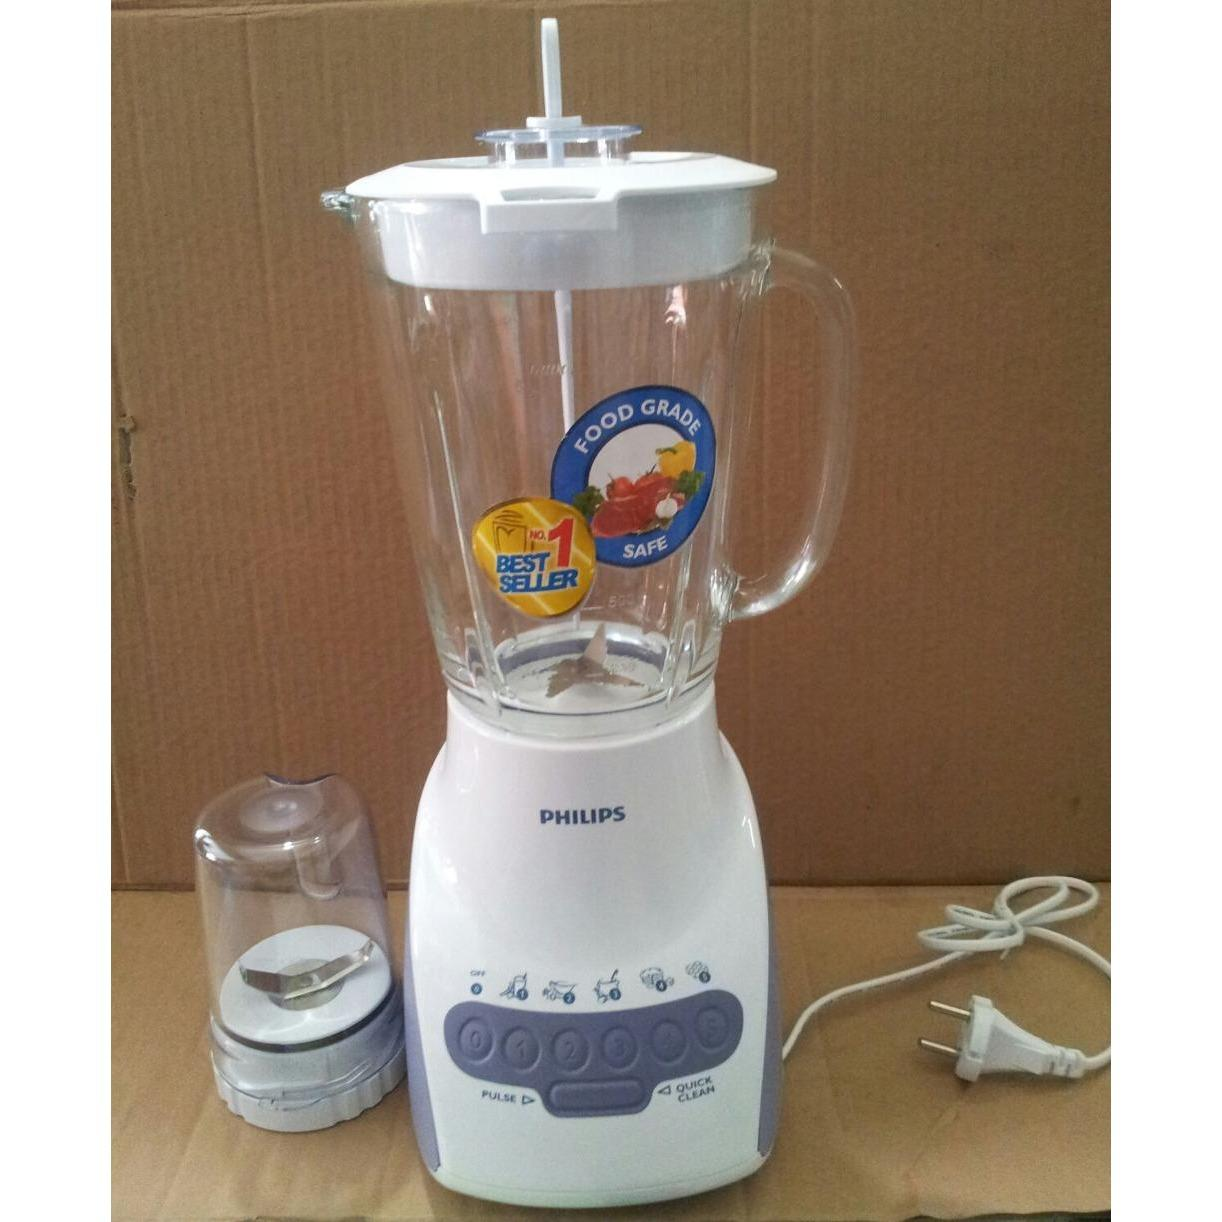 PHILIPS - BLENDER - TERLARIS - BEST SELLER - Blender Philips Kaca HR 2116 -  TERMURAH - ALAT DAPUR